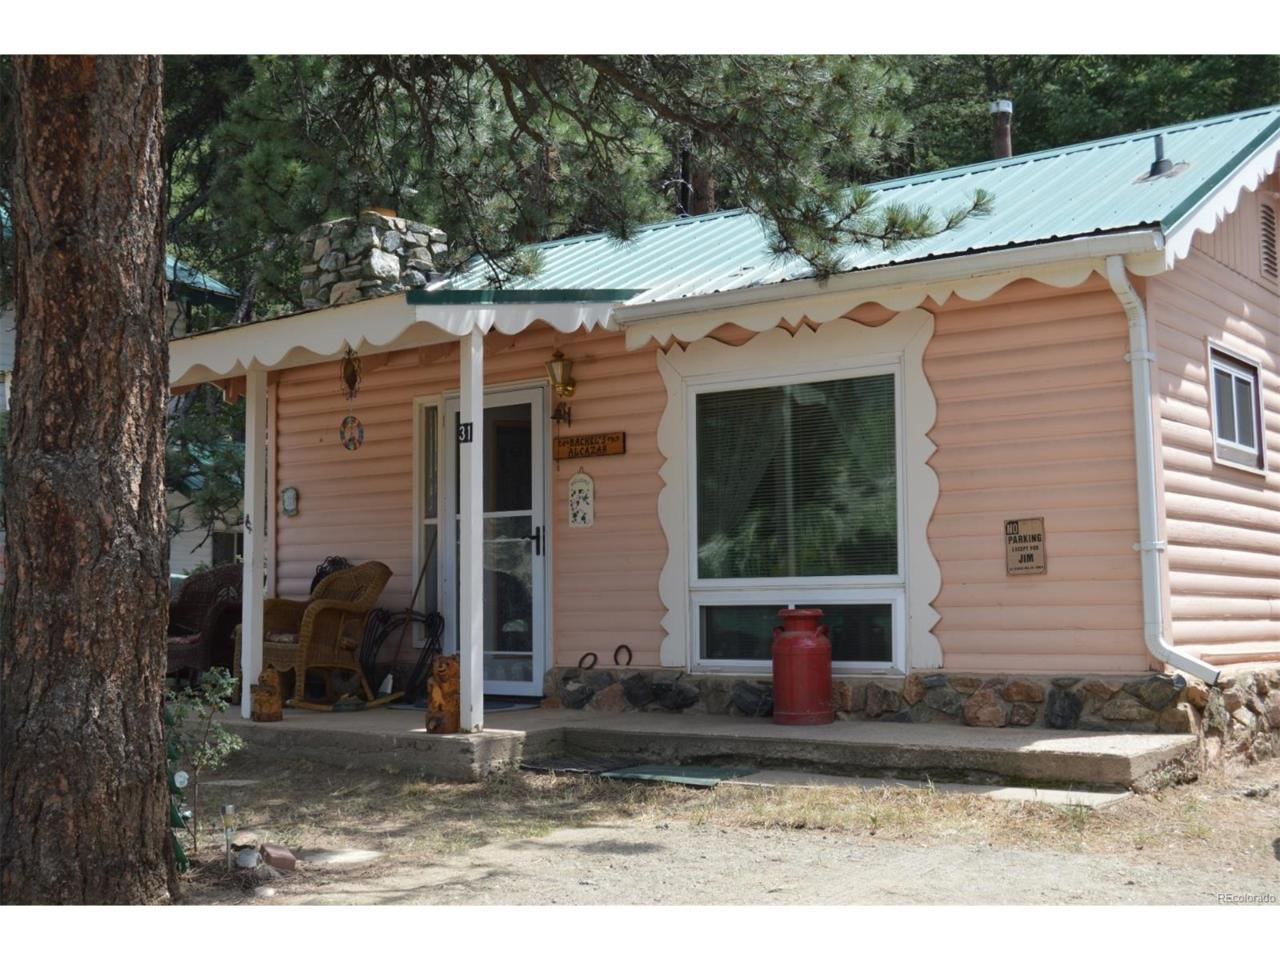 57920 Hwy 285 #31, Bailey, CO 80421 (MLS #4577772) :: 8z Real Estate